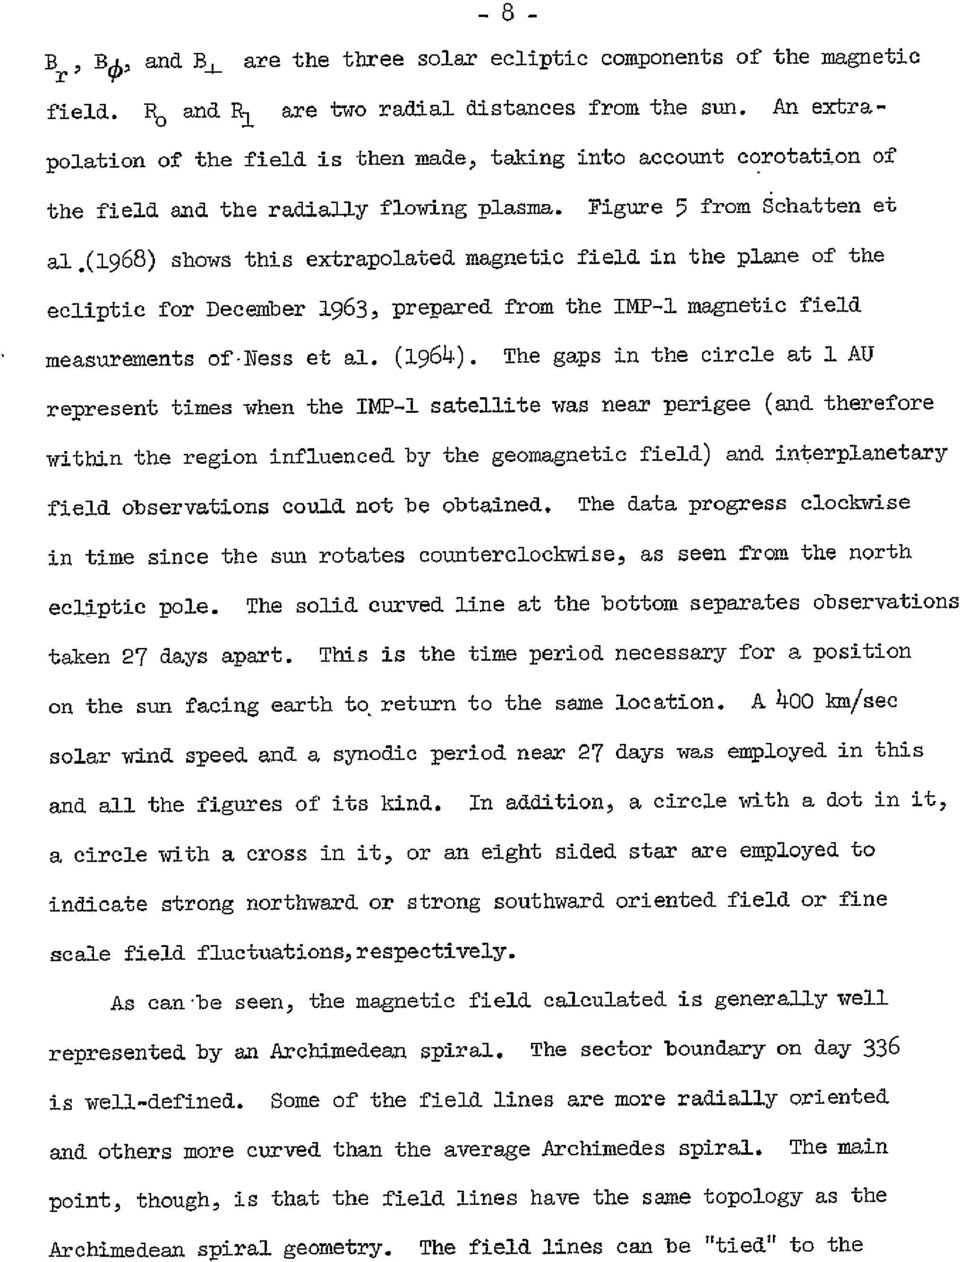 (1968) shows this extrapolated magnetic field in the plane of the ecliptic for December 1963, prepared from the IMP-1 magnetic field measurements of-ness et al. (1964).